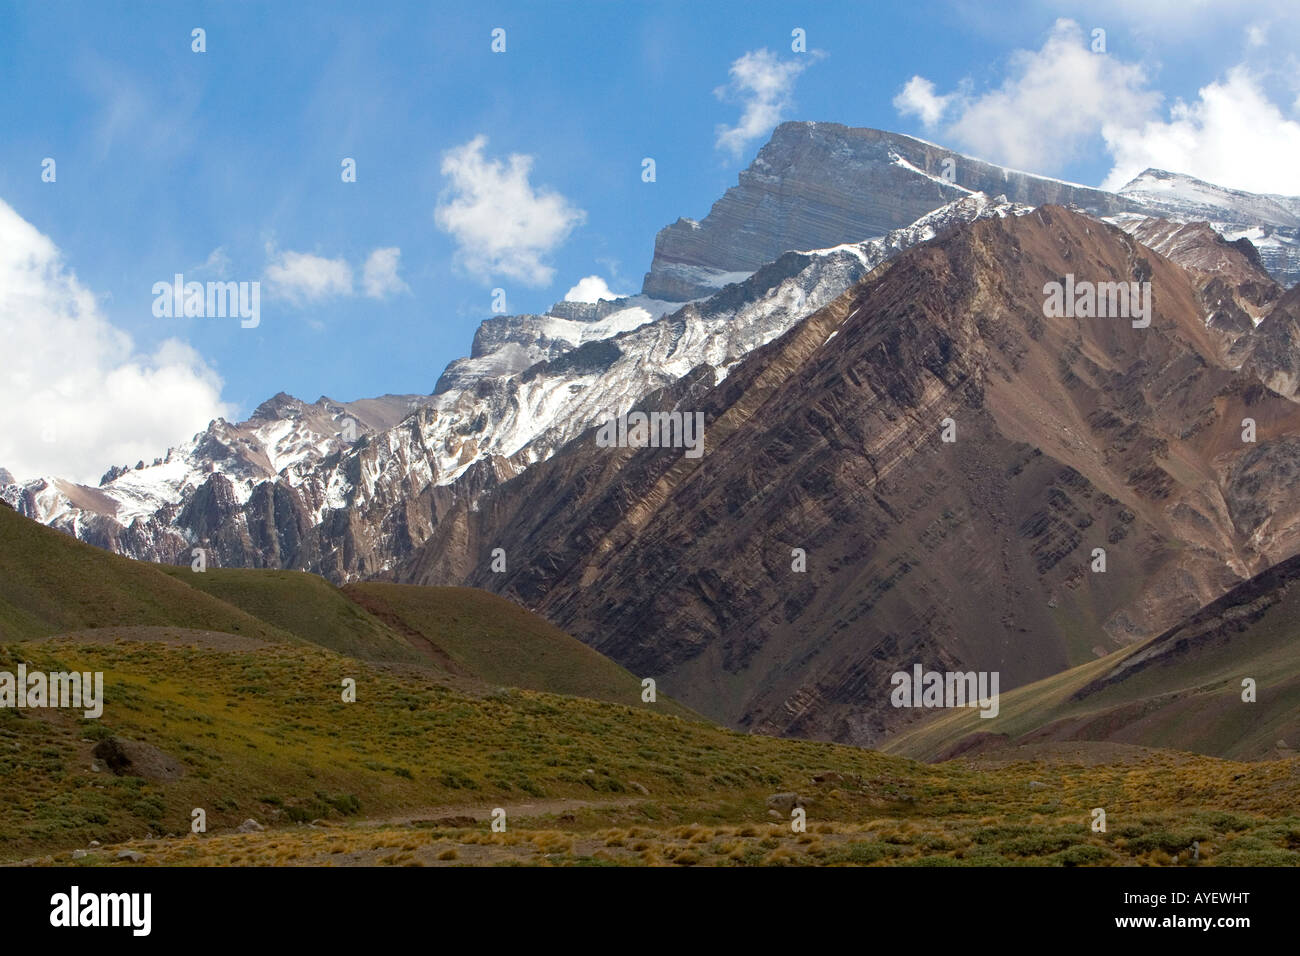 Mount Aconcagua in the Andes Mountain Range Argentina ...